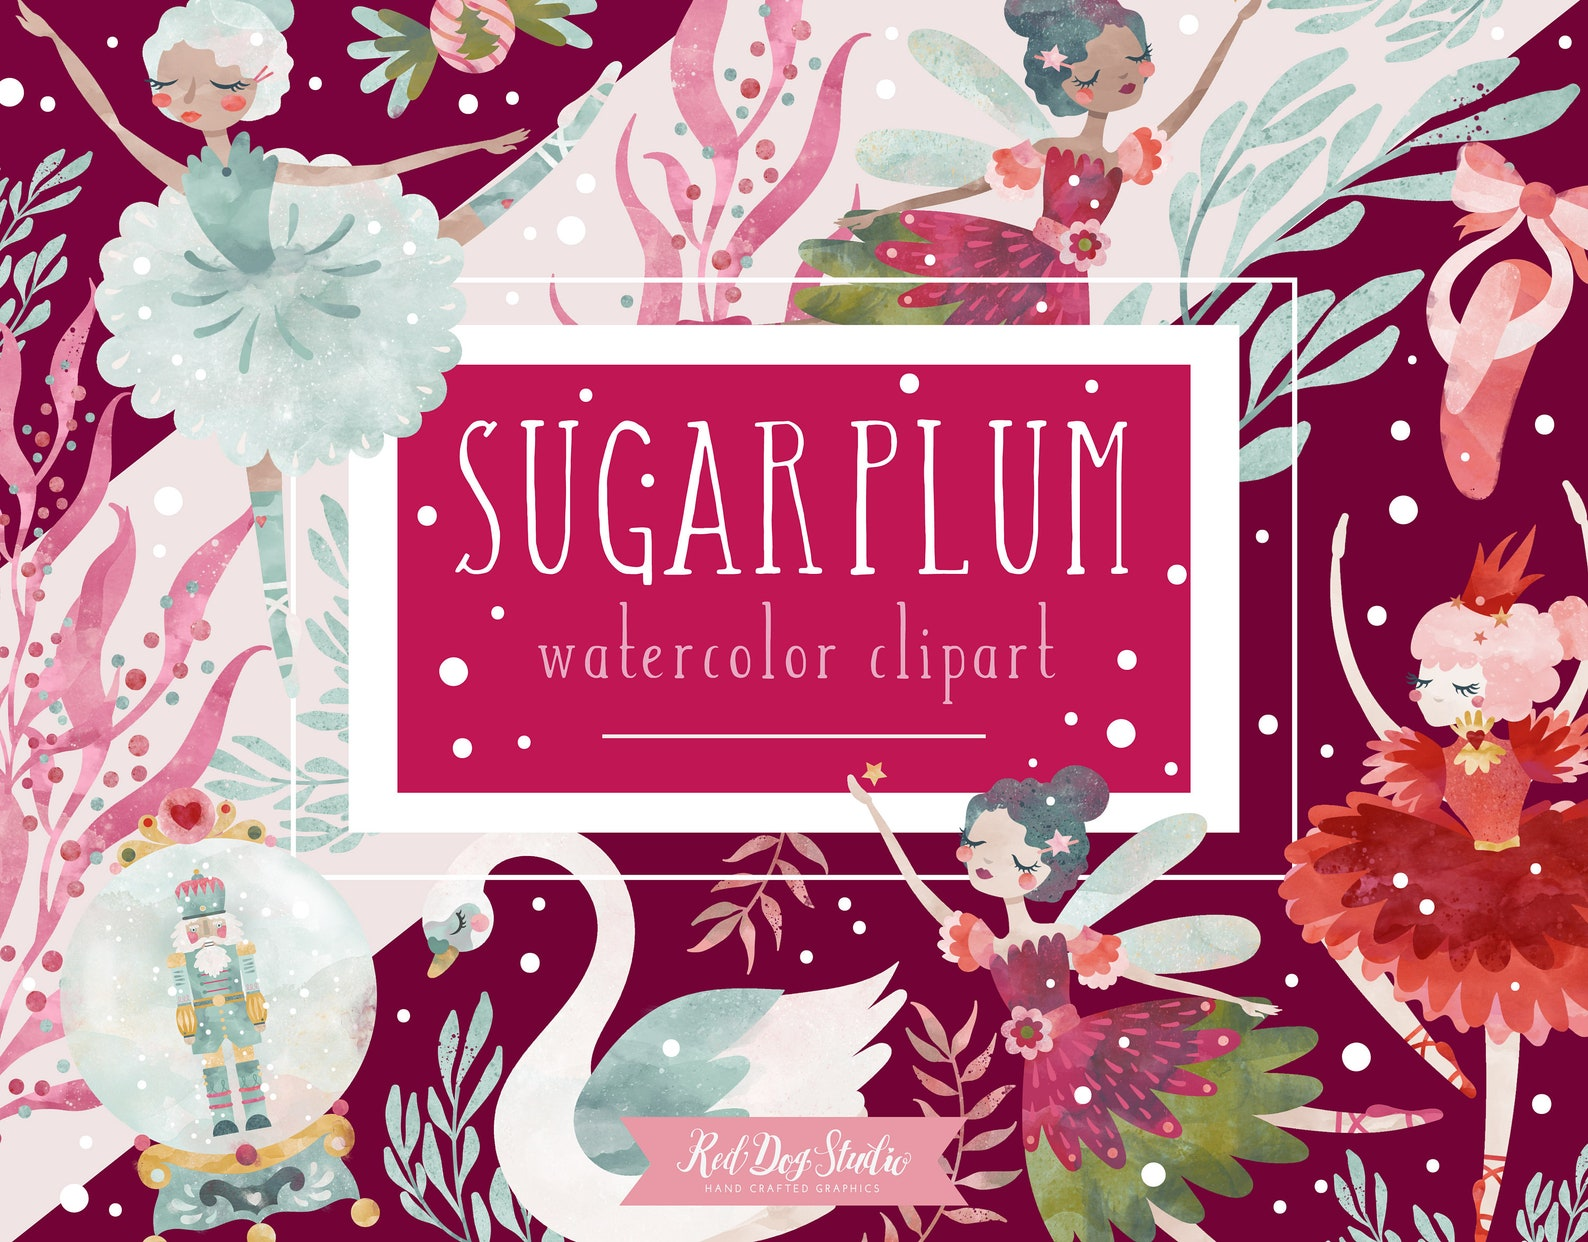 sugar plum fairy watercolor clipart nutcracker ballet clip art graphics, christmas ballerina, swan ballet shoes, snowglobe, cand